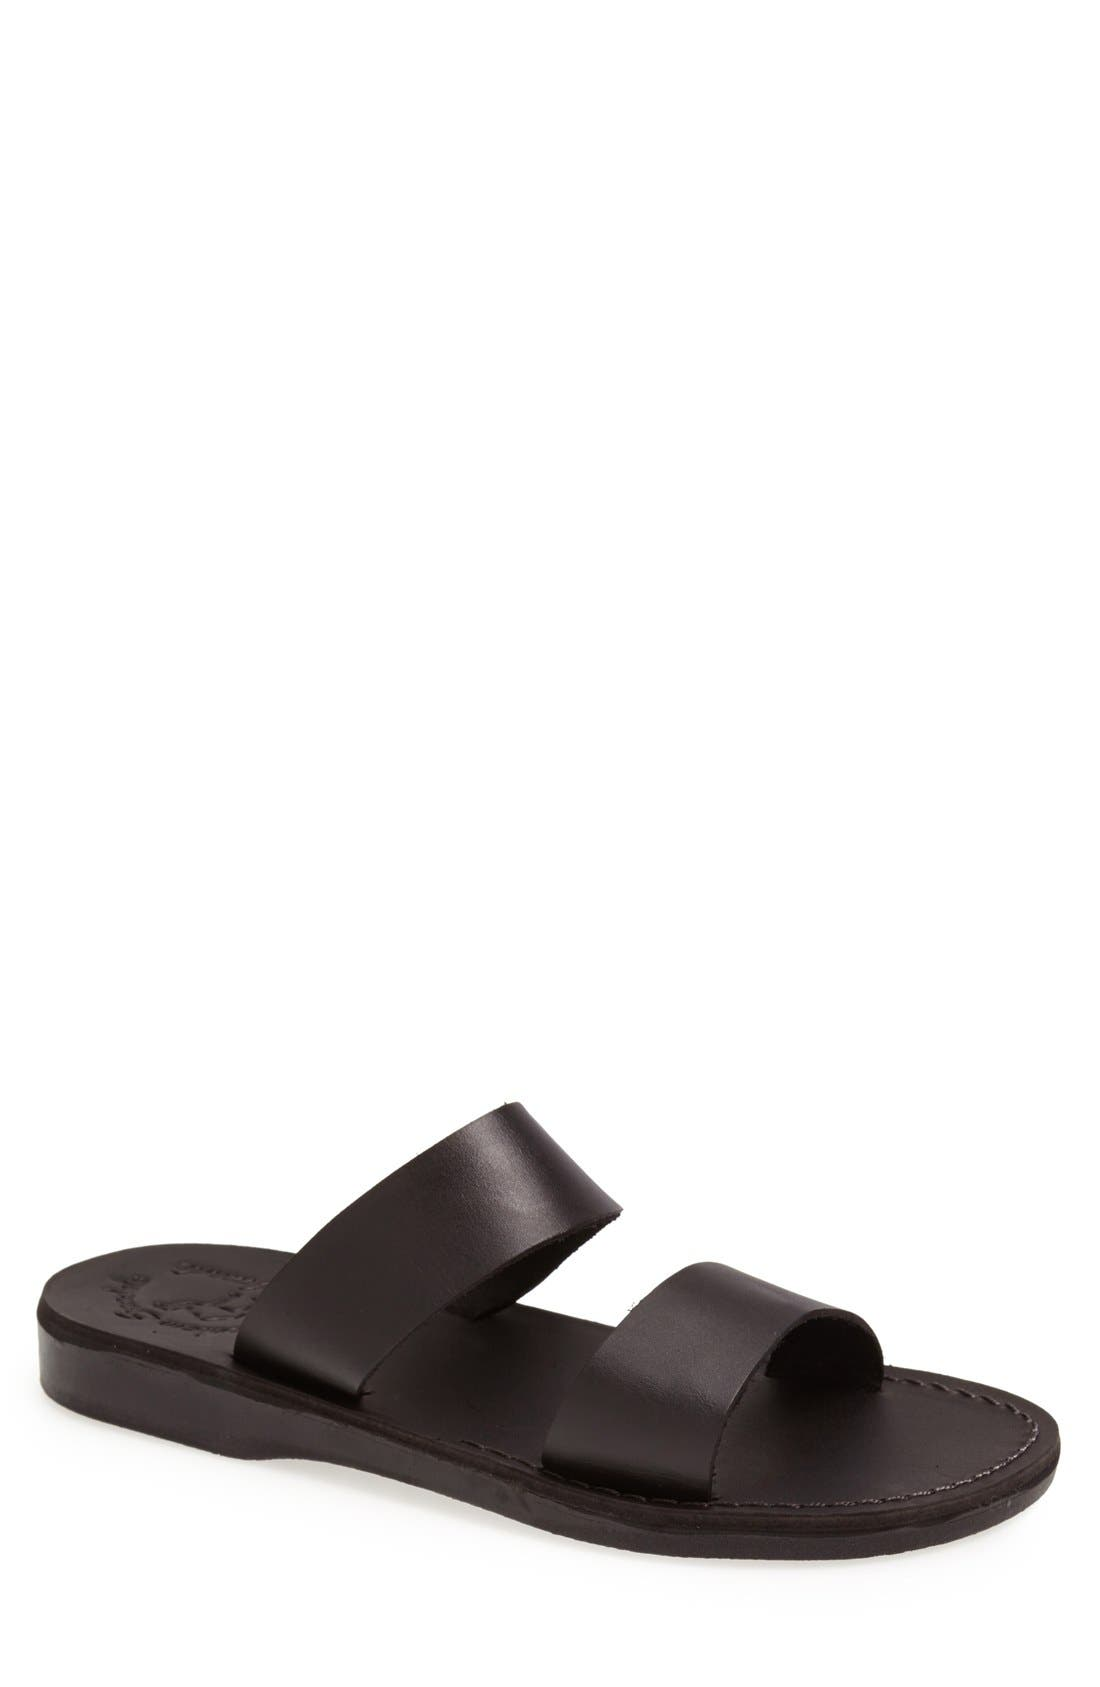 'Aviv' Leather Sandal,                         Main,                         color, Black